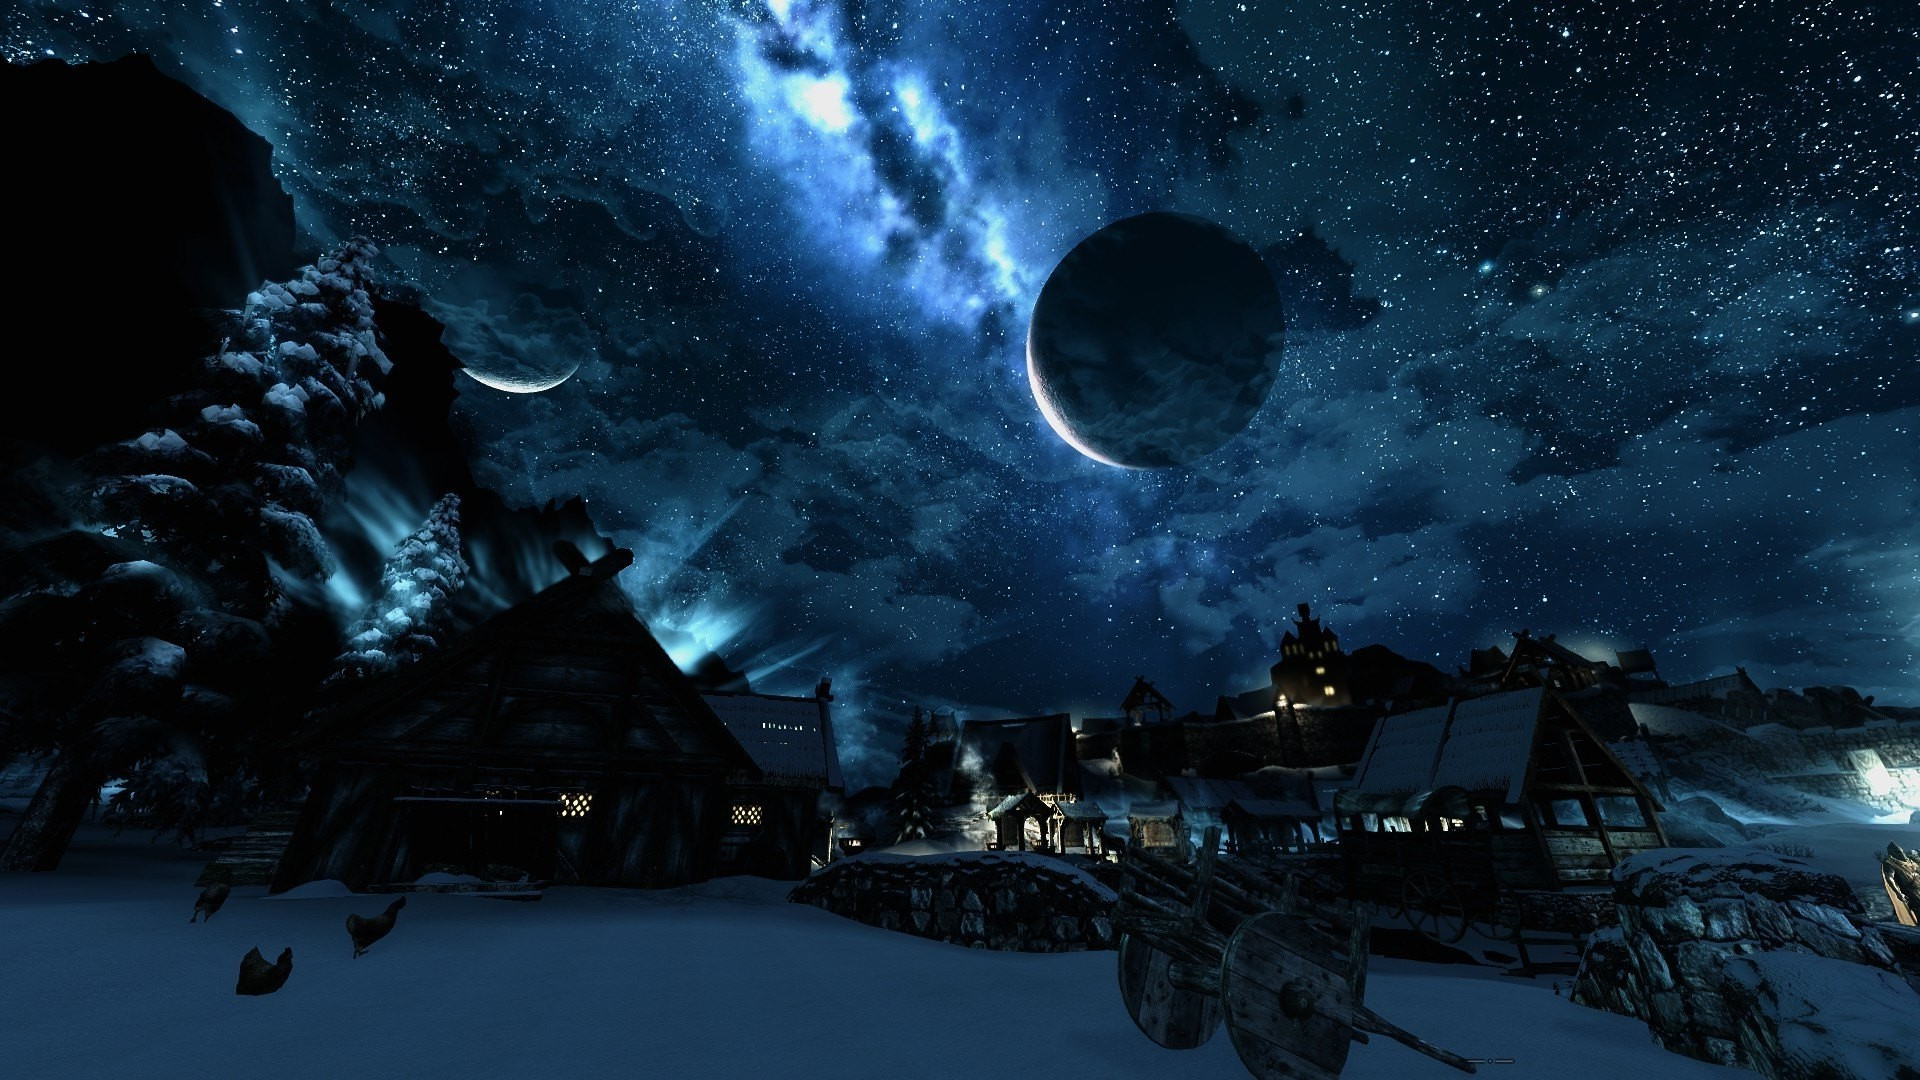 skyrim epic pictures, skyrim hd wallpapers